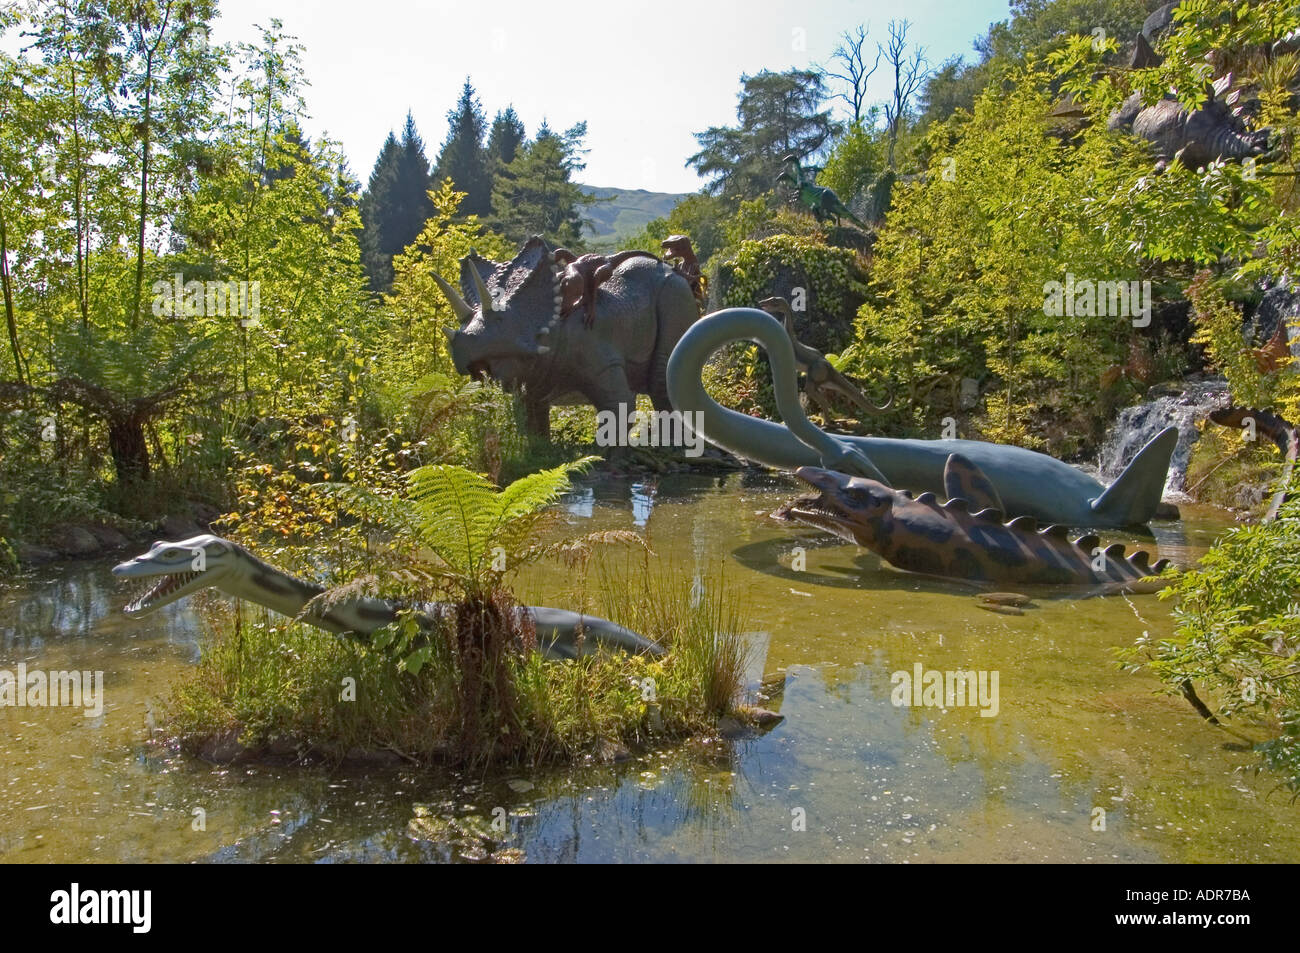 Dinosaur models at the Dan yr Ogof Showcaves and Dinosaur Park, Brecon Beacons, Mid Wales, UK - Stock Image